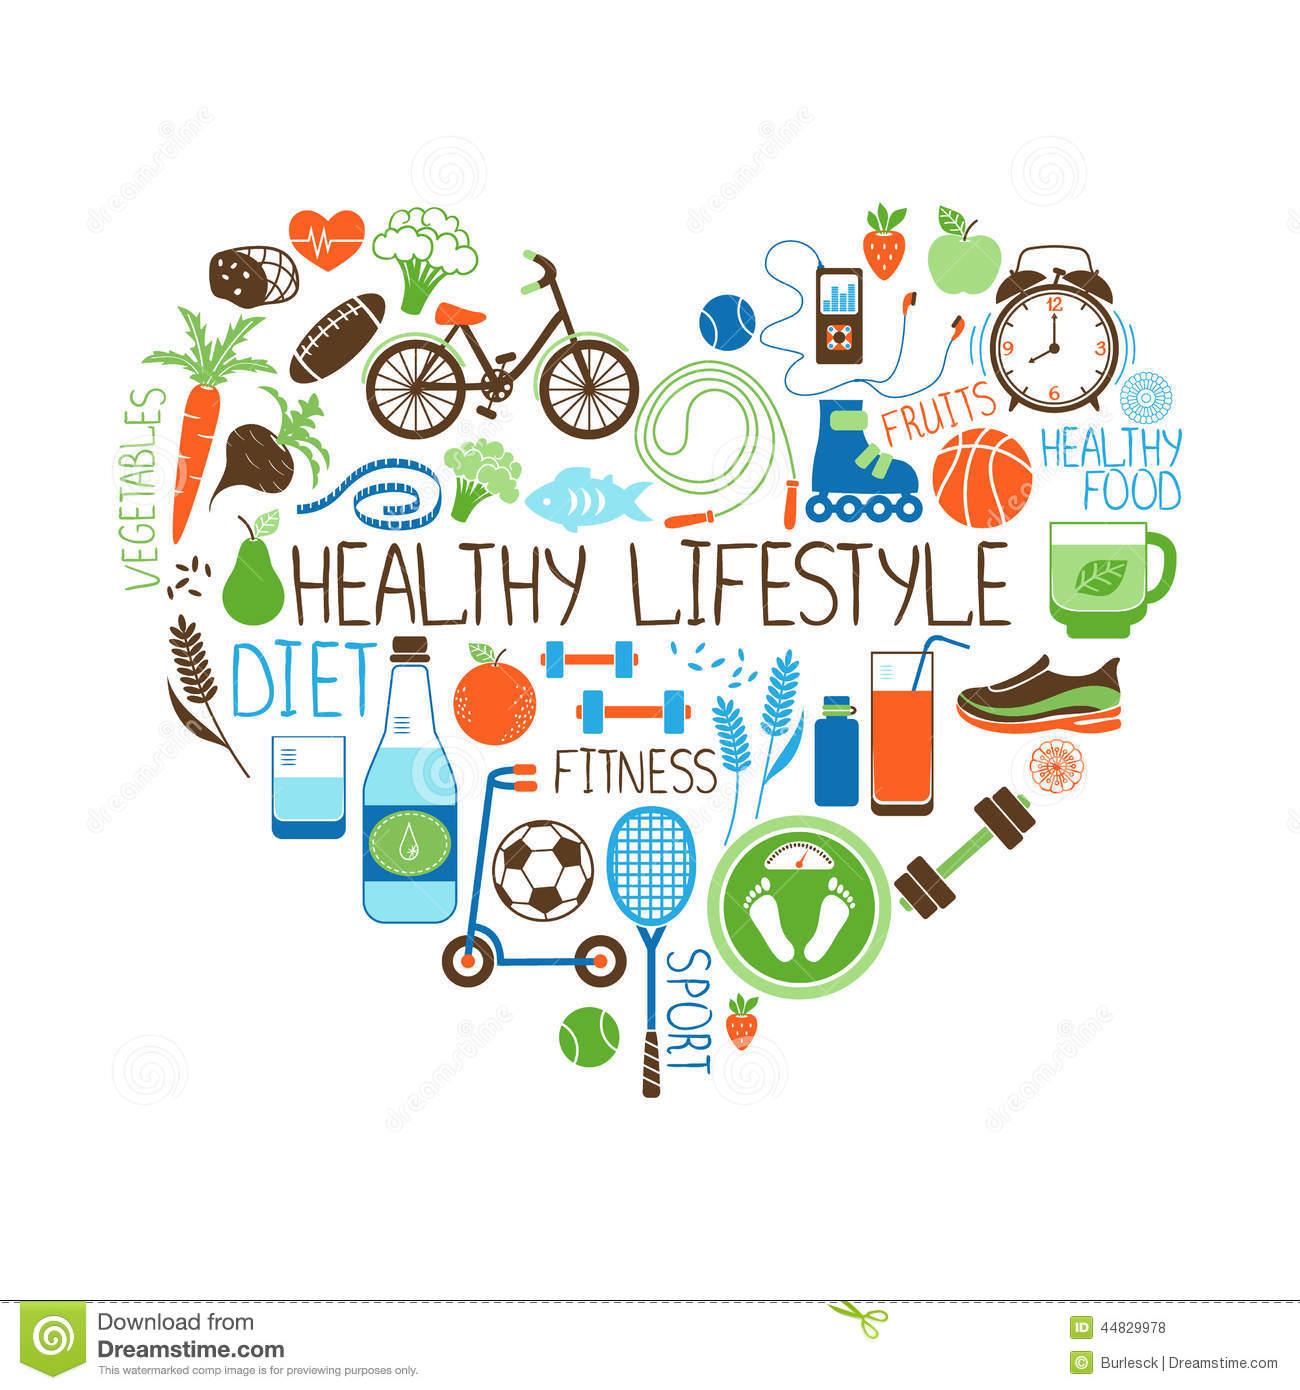 Healthy Lifestyle Diet And Fitness Heart Sign Stock Vector Image with regard to Healthy Diet And Lifestyle